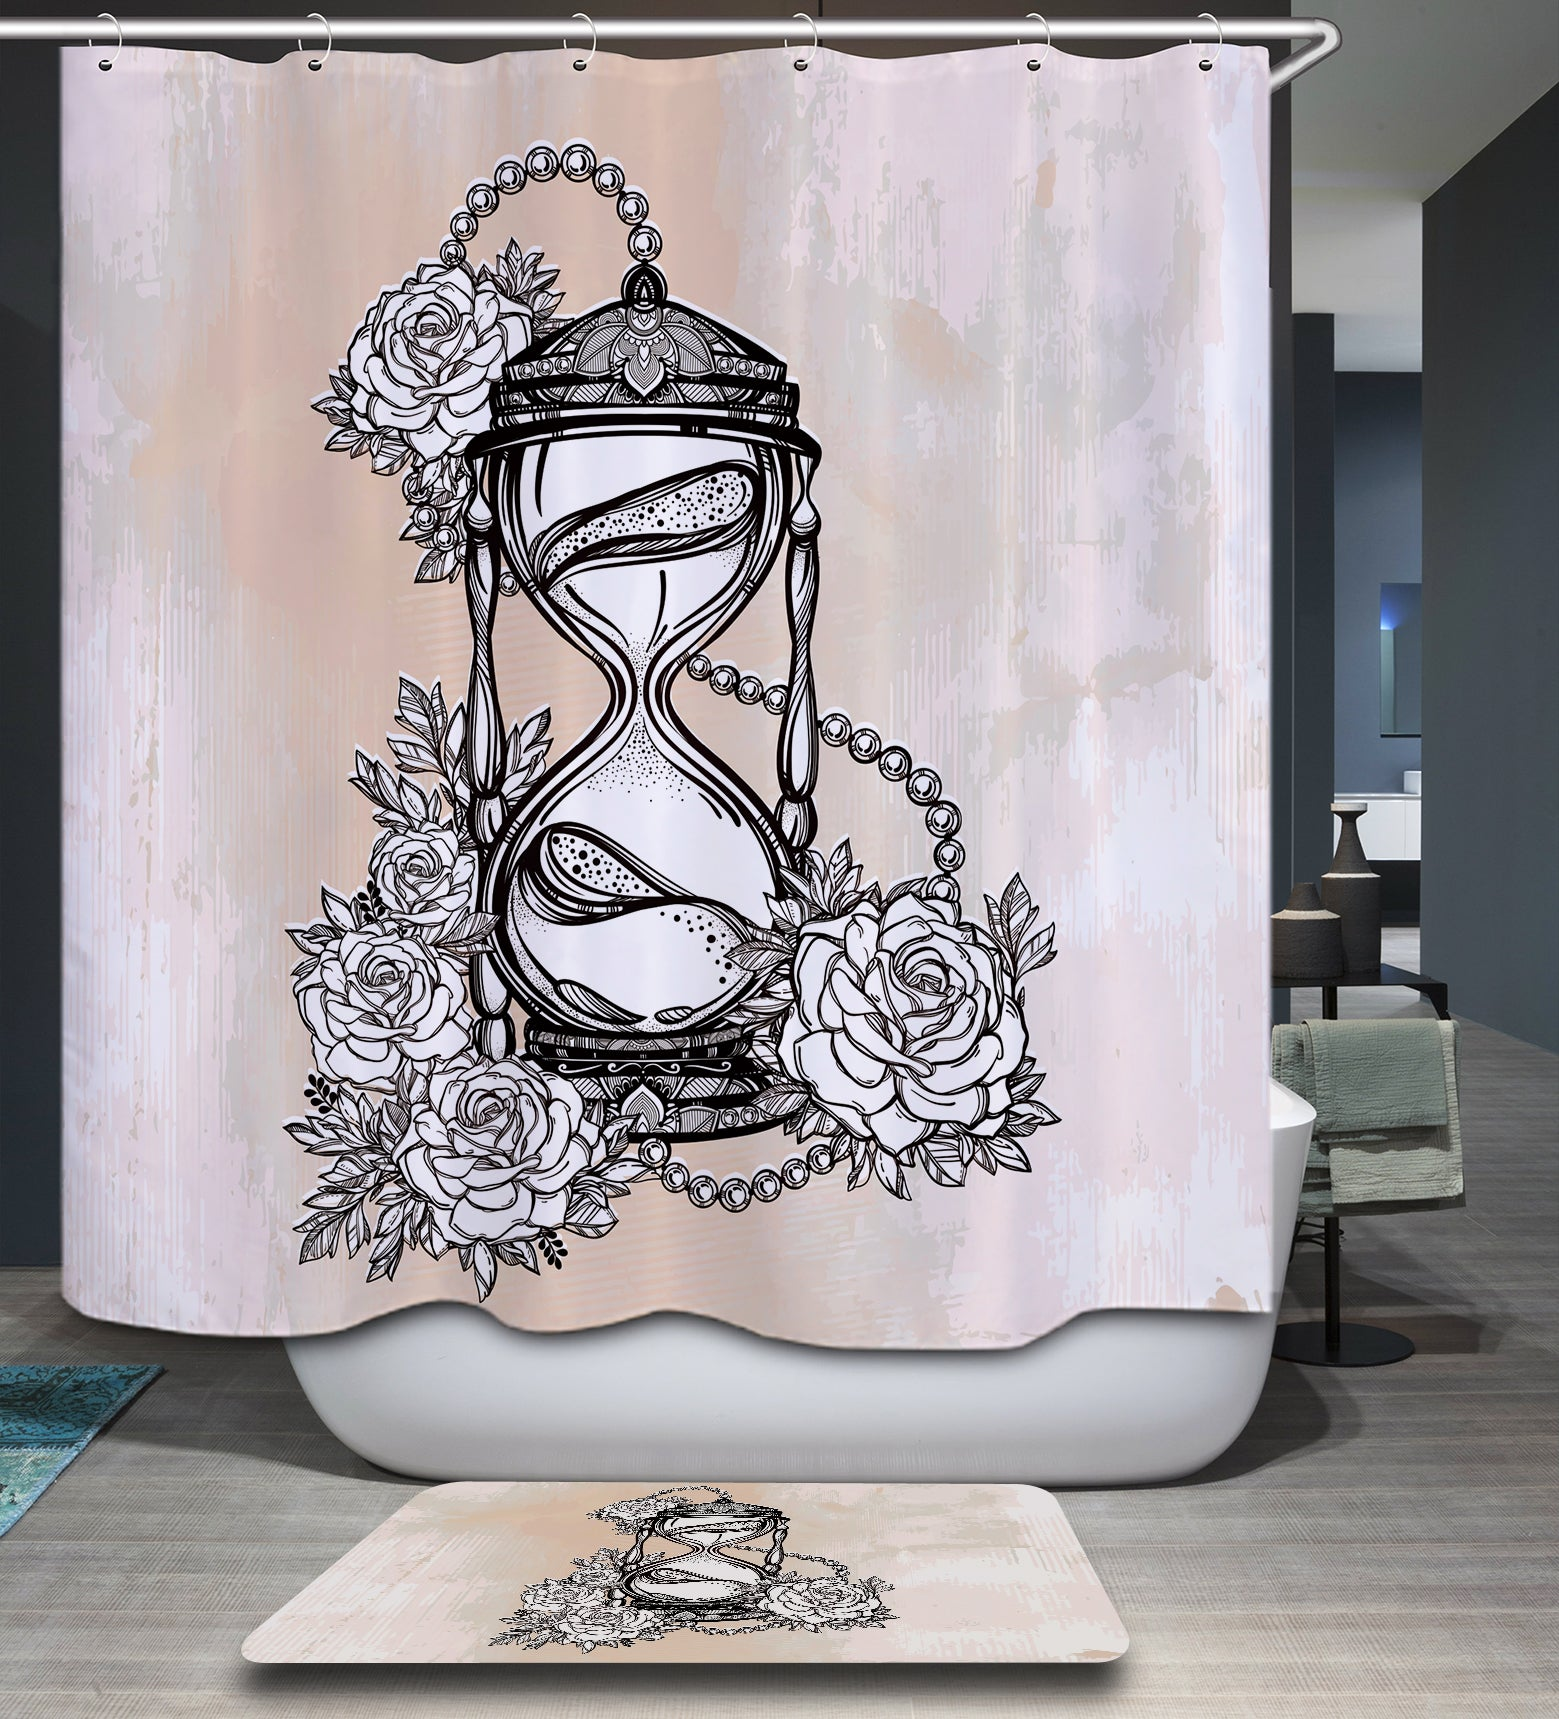 Hourglass and Roses Drawing Shower Curtain